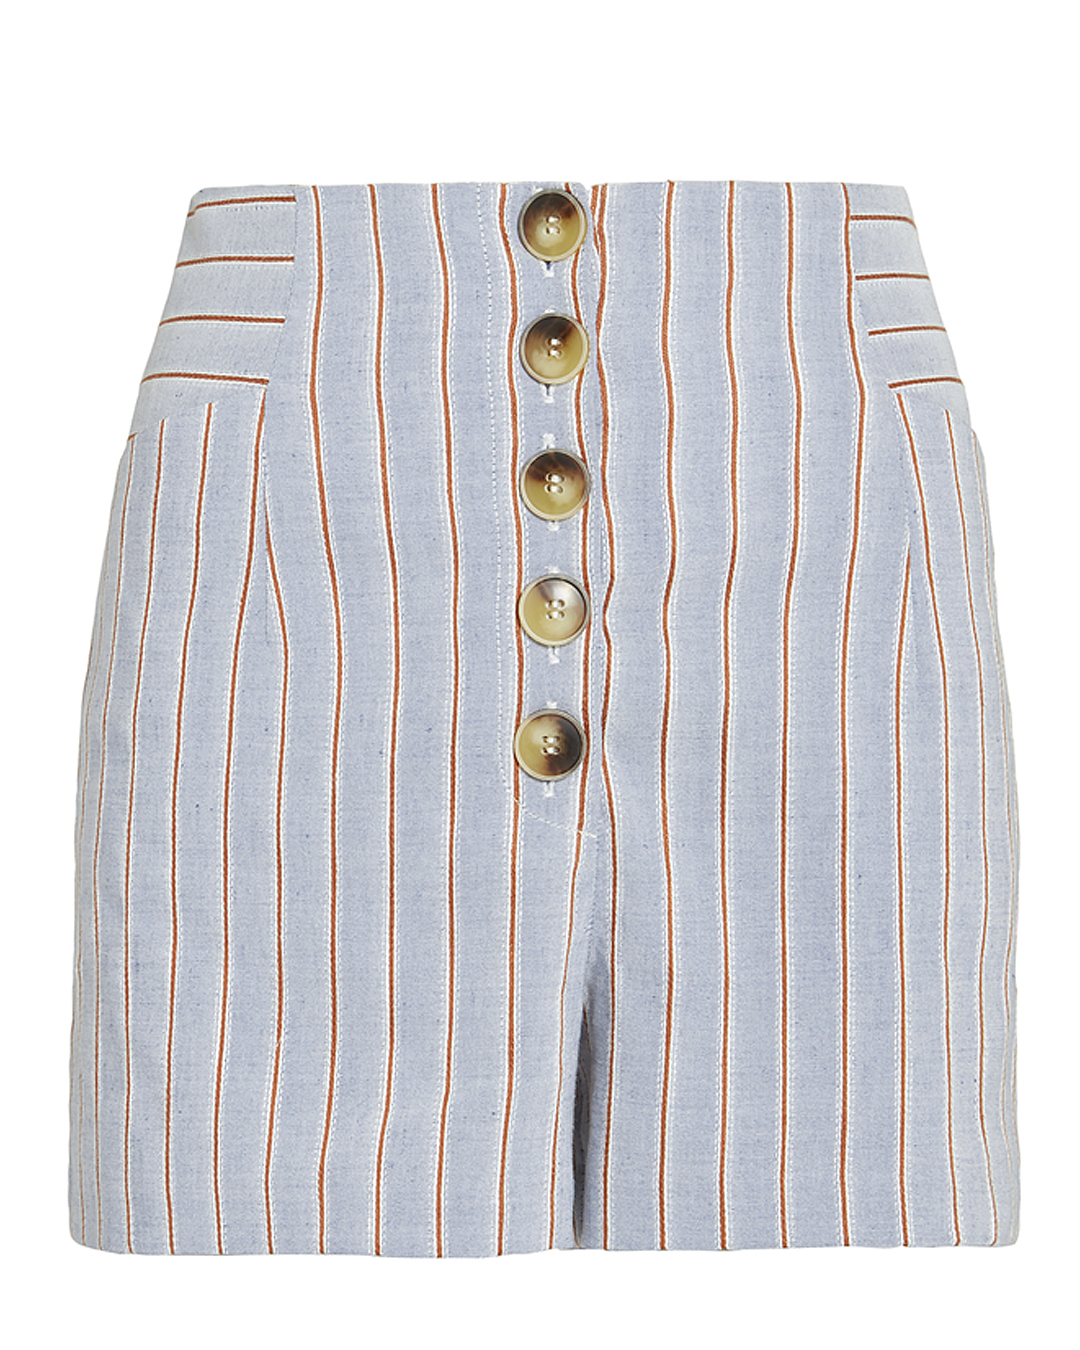 EXCLUSIVE FOR INTERMIX INTERMIX DELANY STRIPED LINEN HIGH WAIST SHORTS BLUE-LT